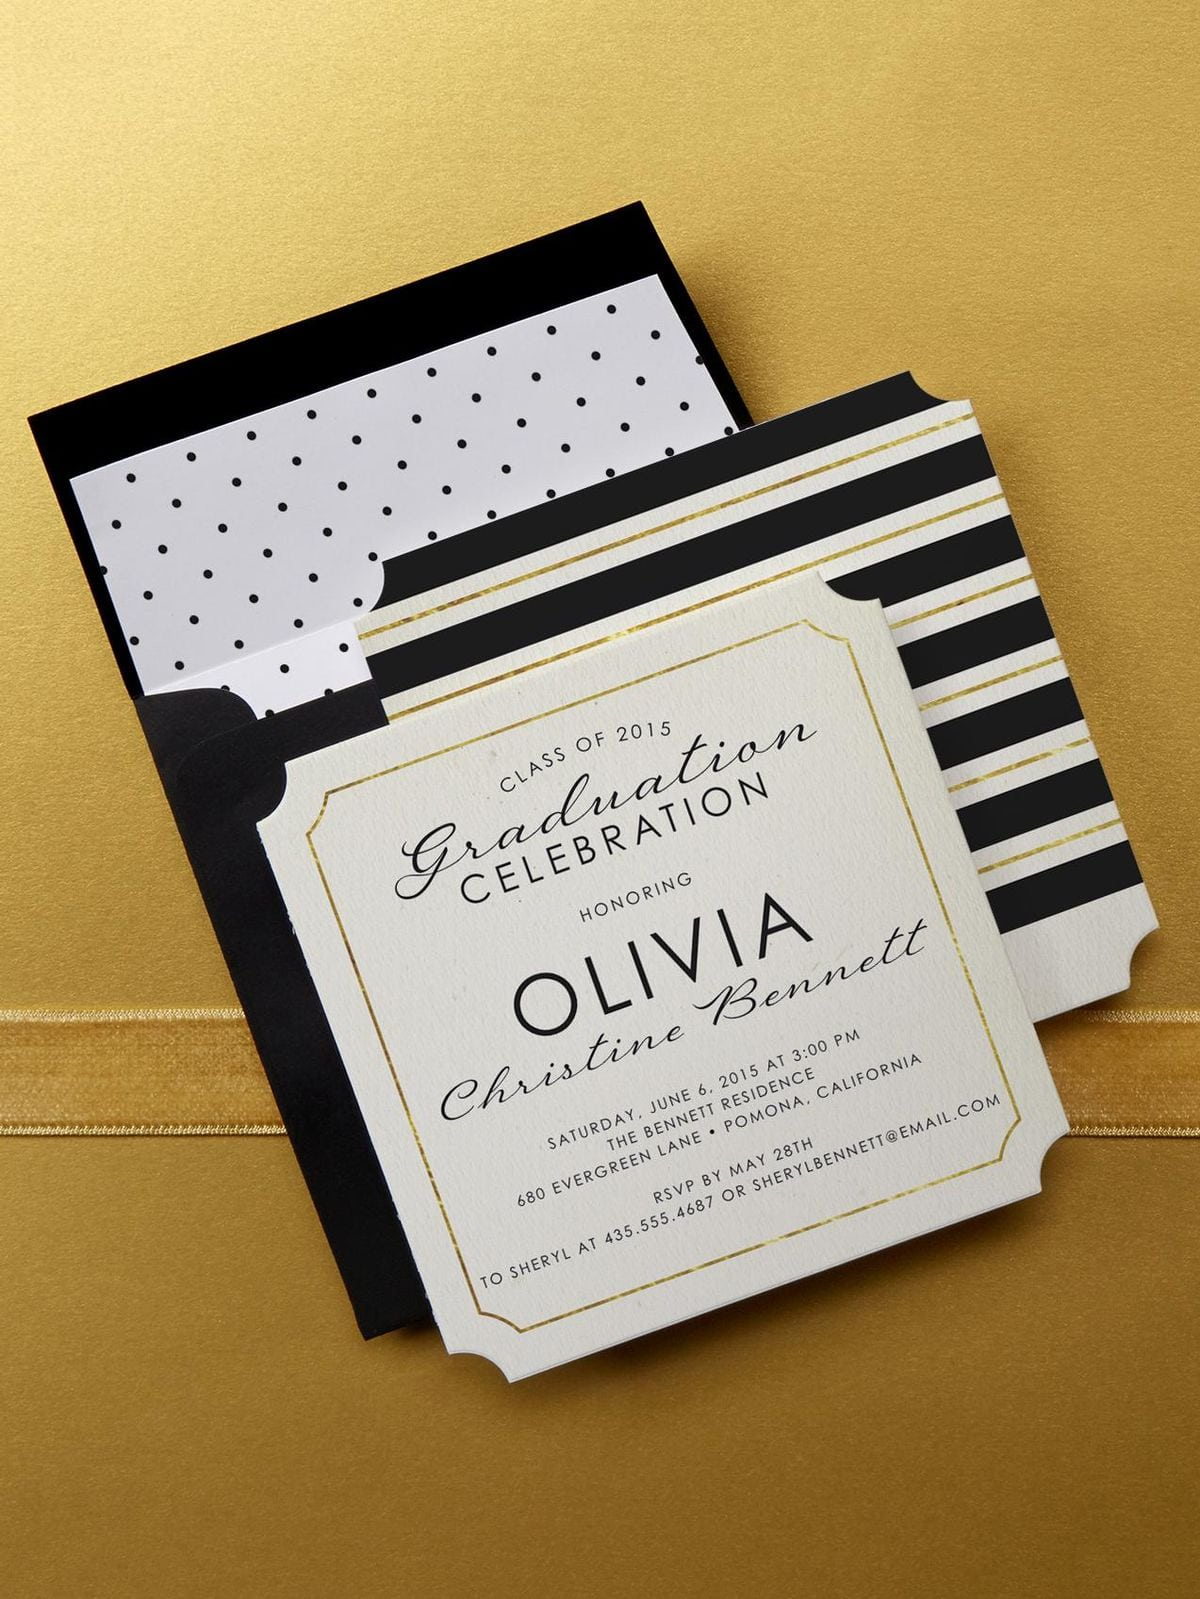 Designs   Save The Date Invitations For Graduation Party As Well